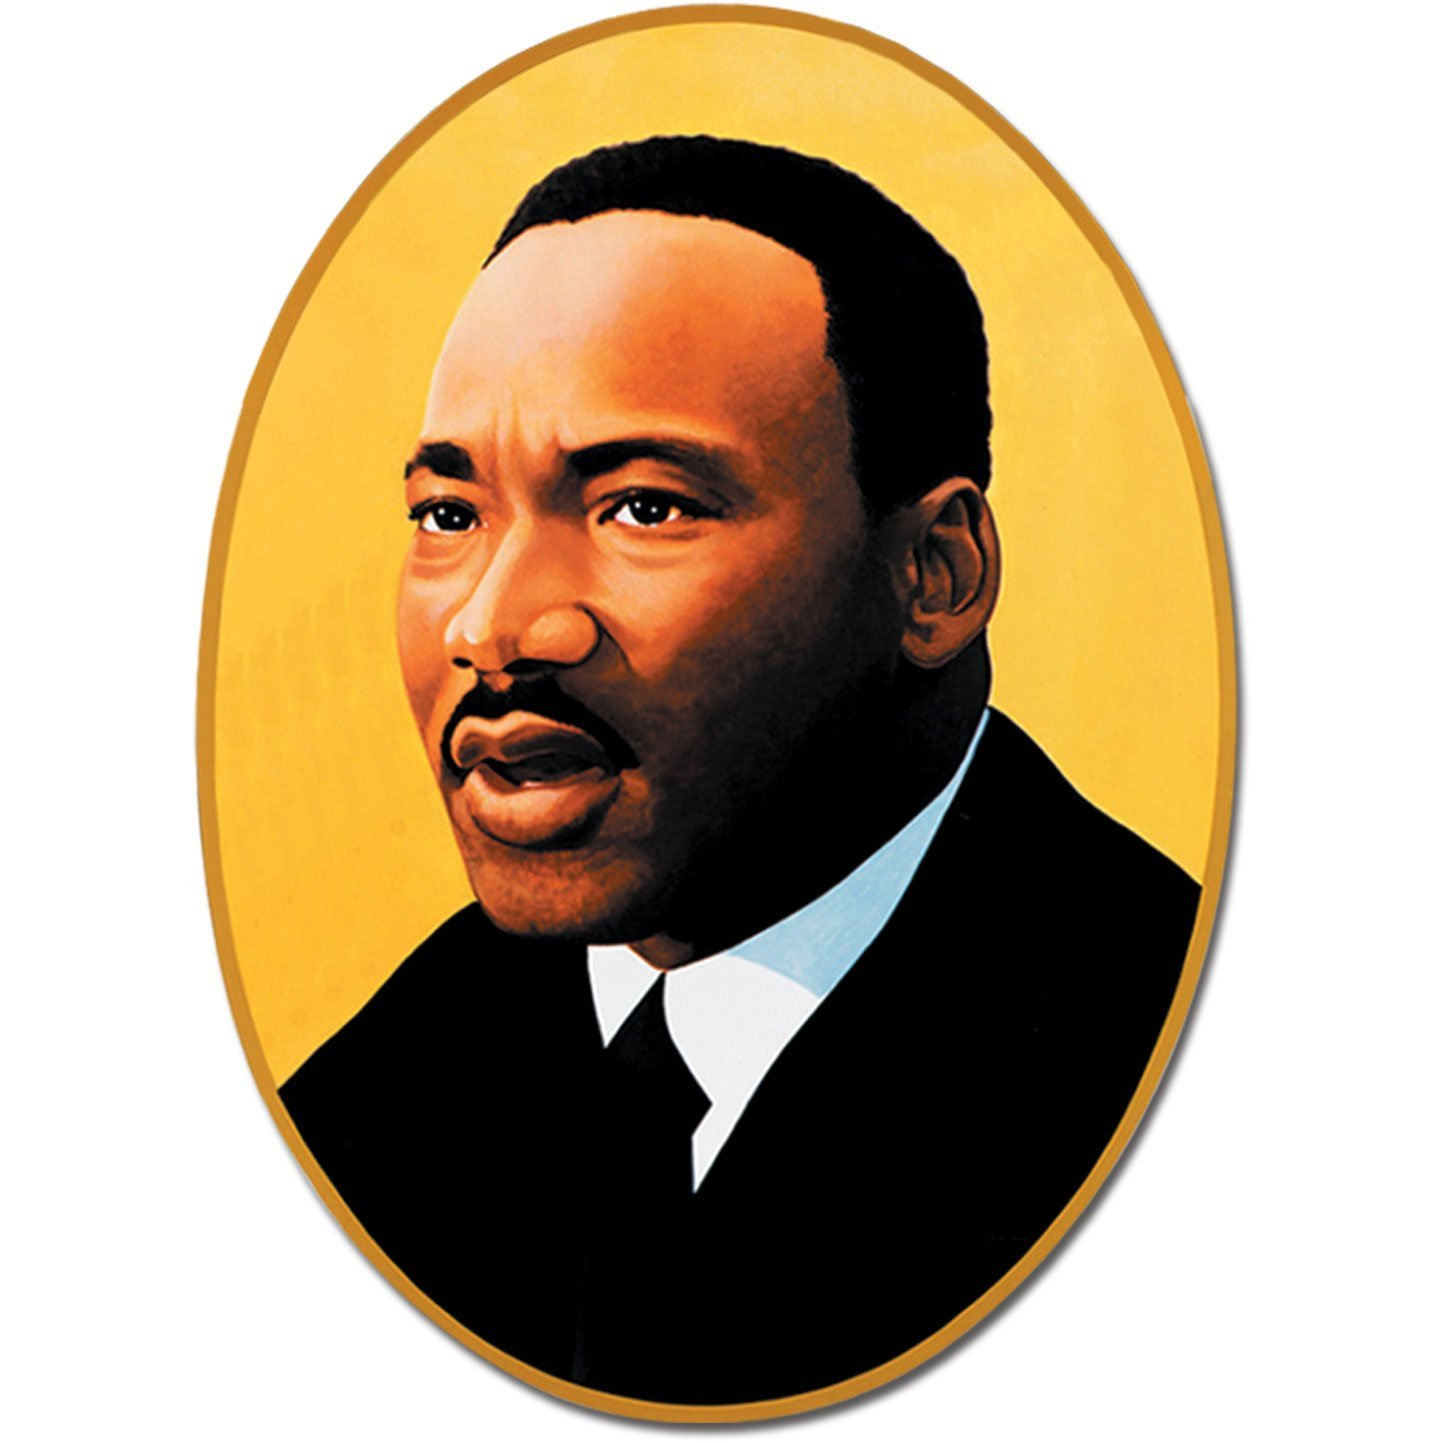 Clipart Of Martin Luther King.